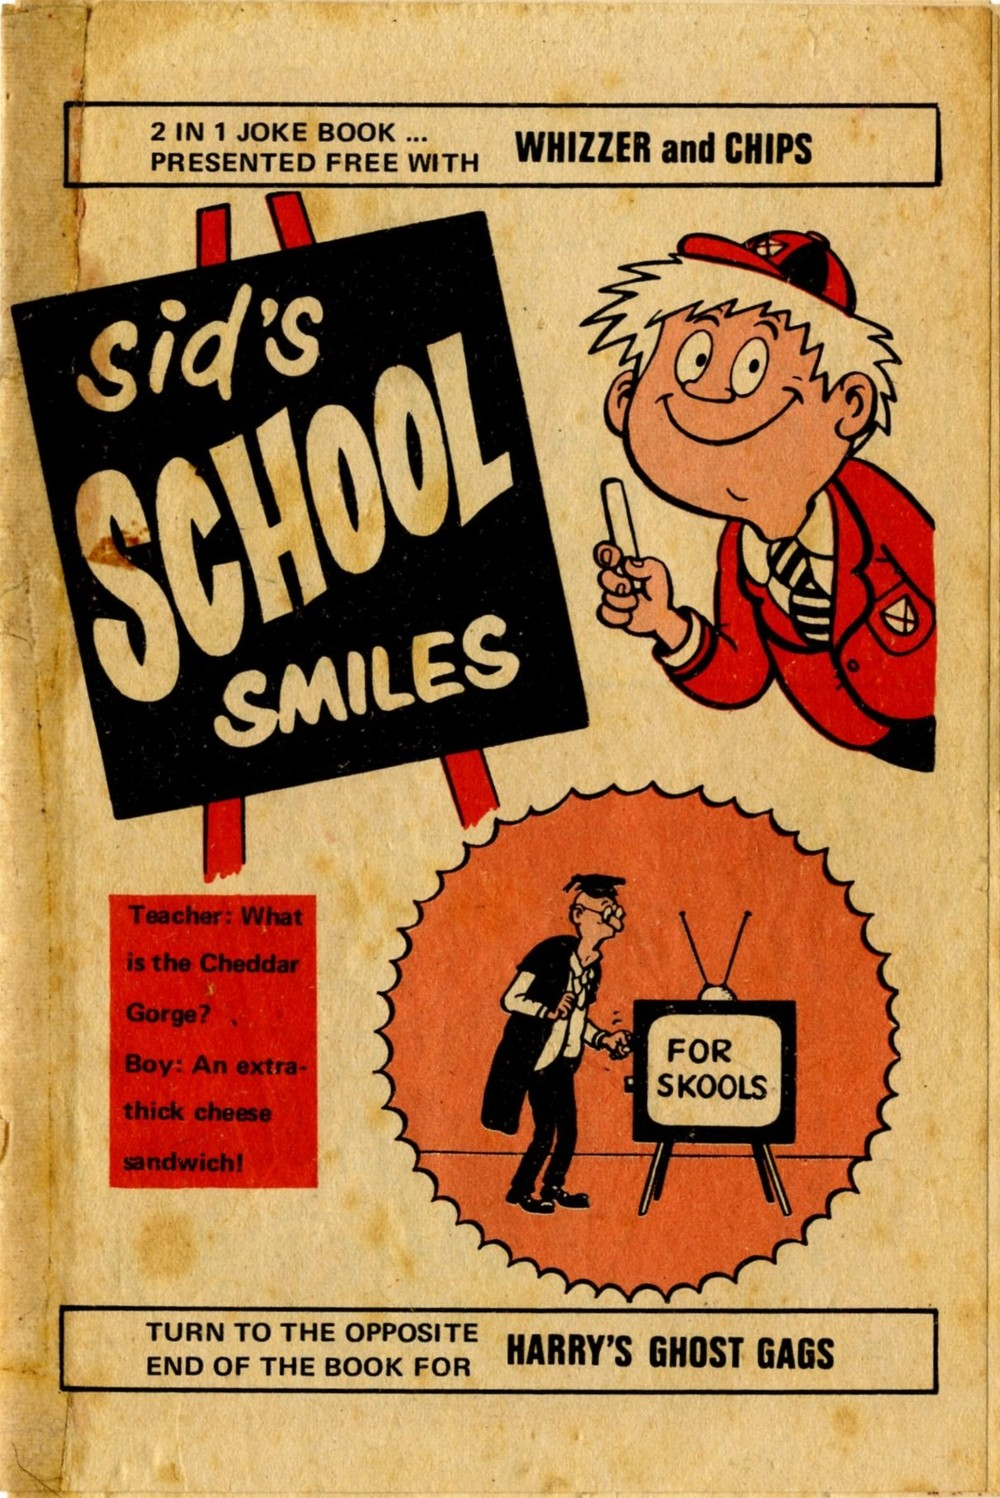 Sid's School Smiles free gift booklet: Mike Lacey (artist)